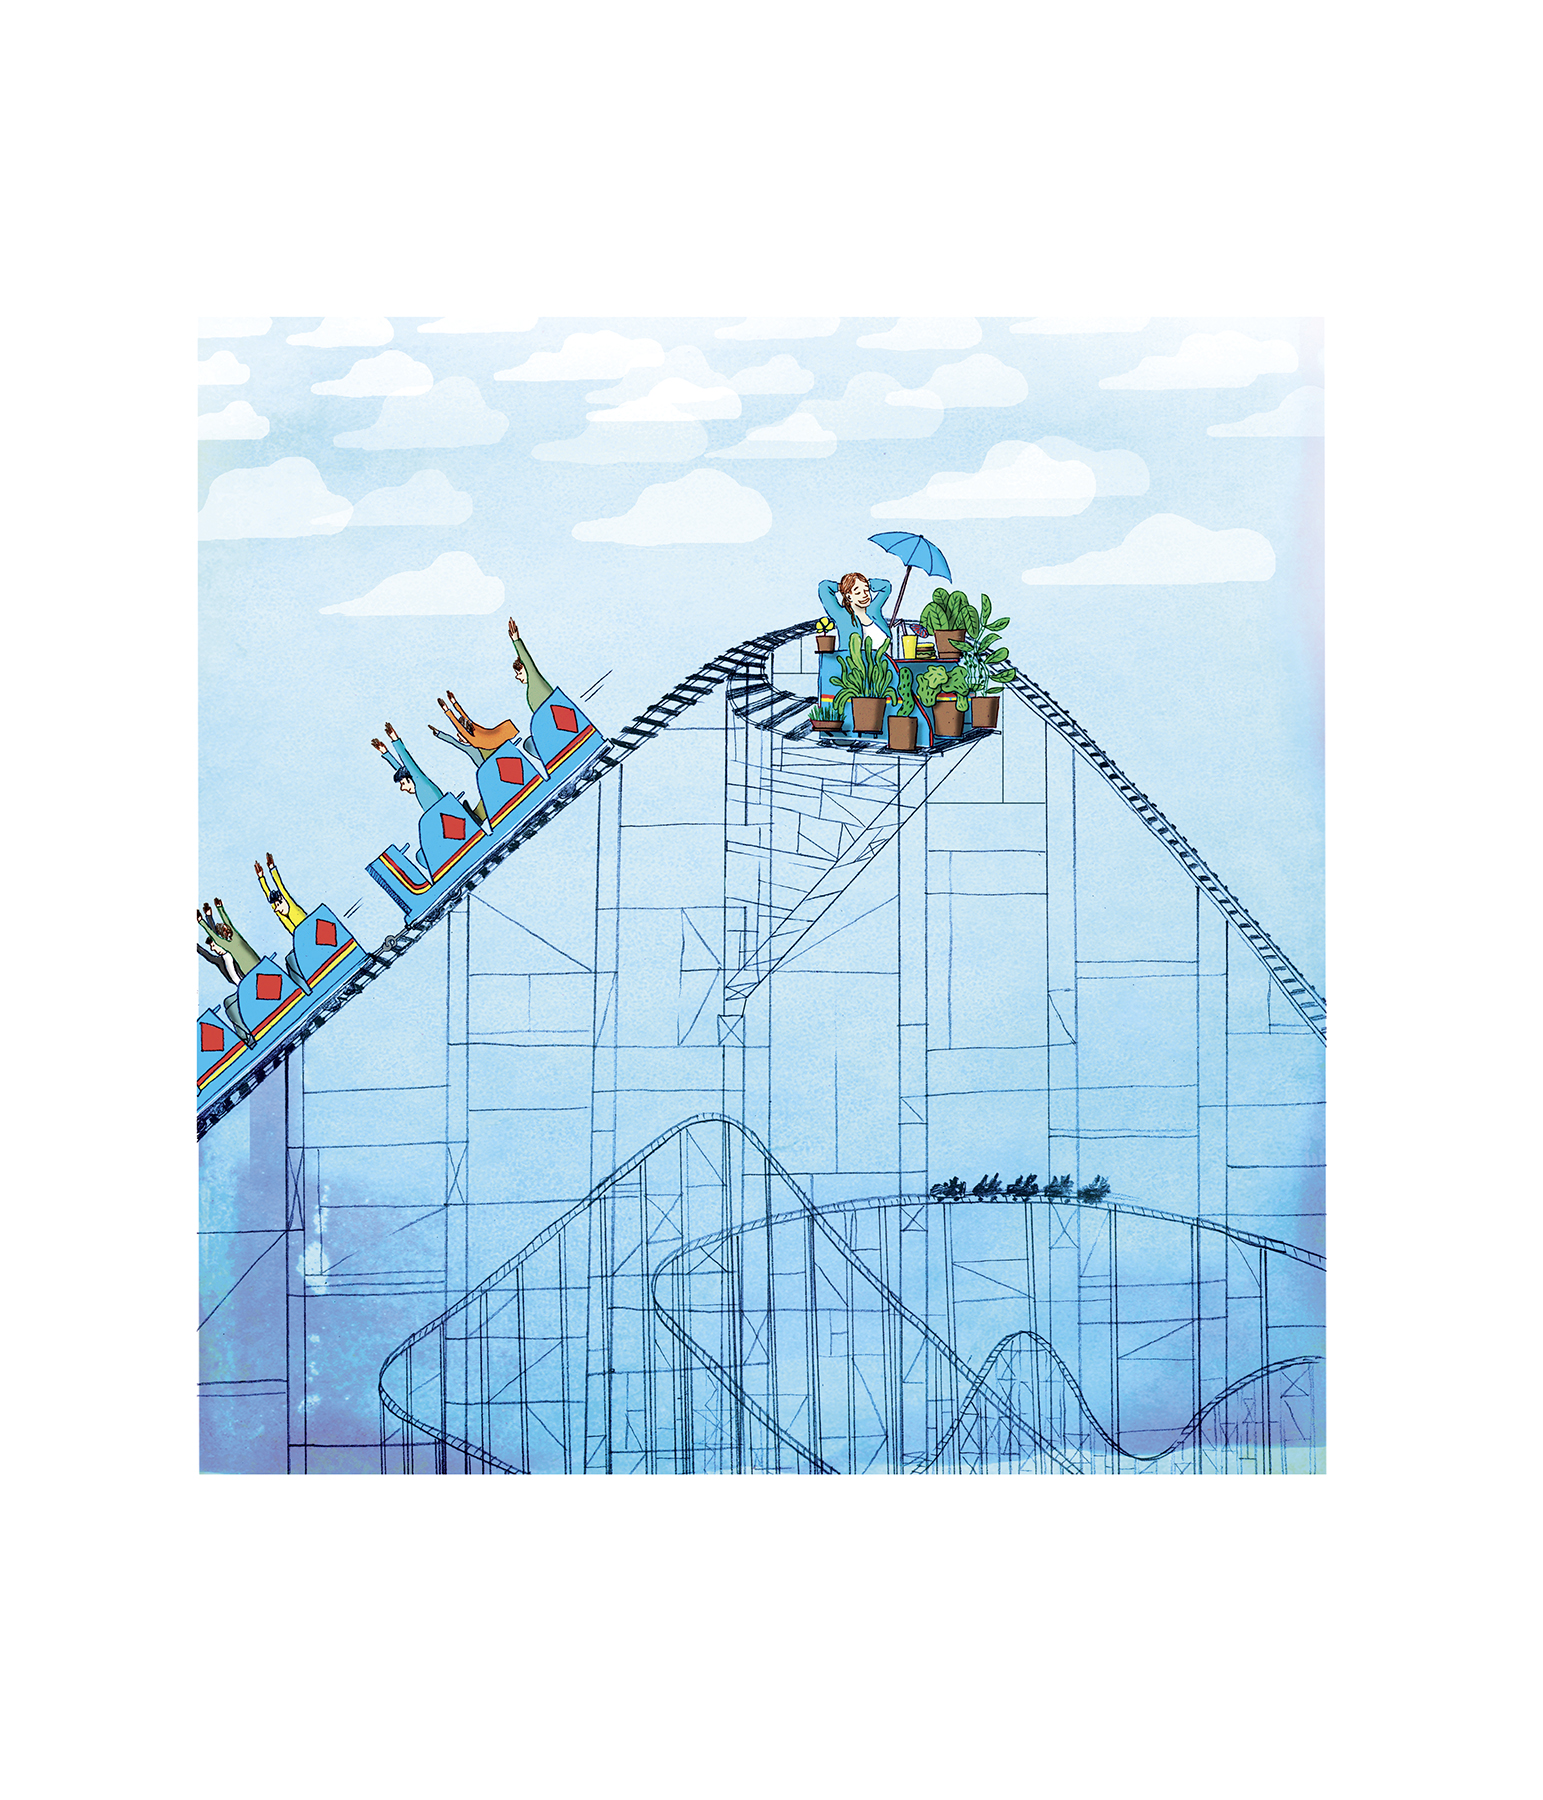 Illustration of a woman sitting at the top of a rollercoaster